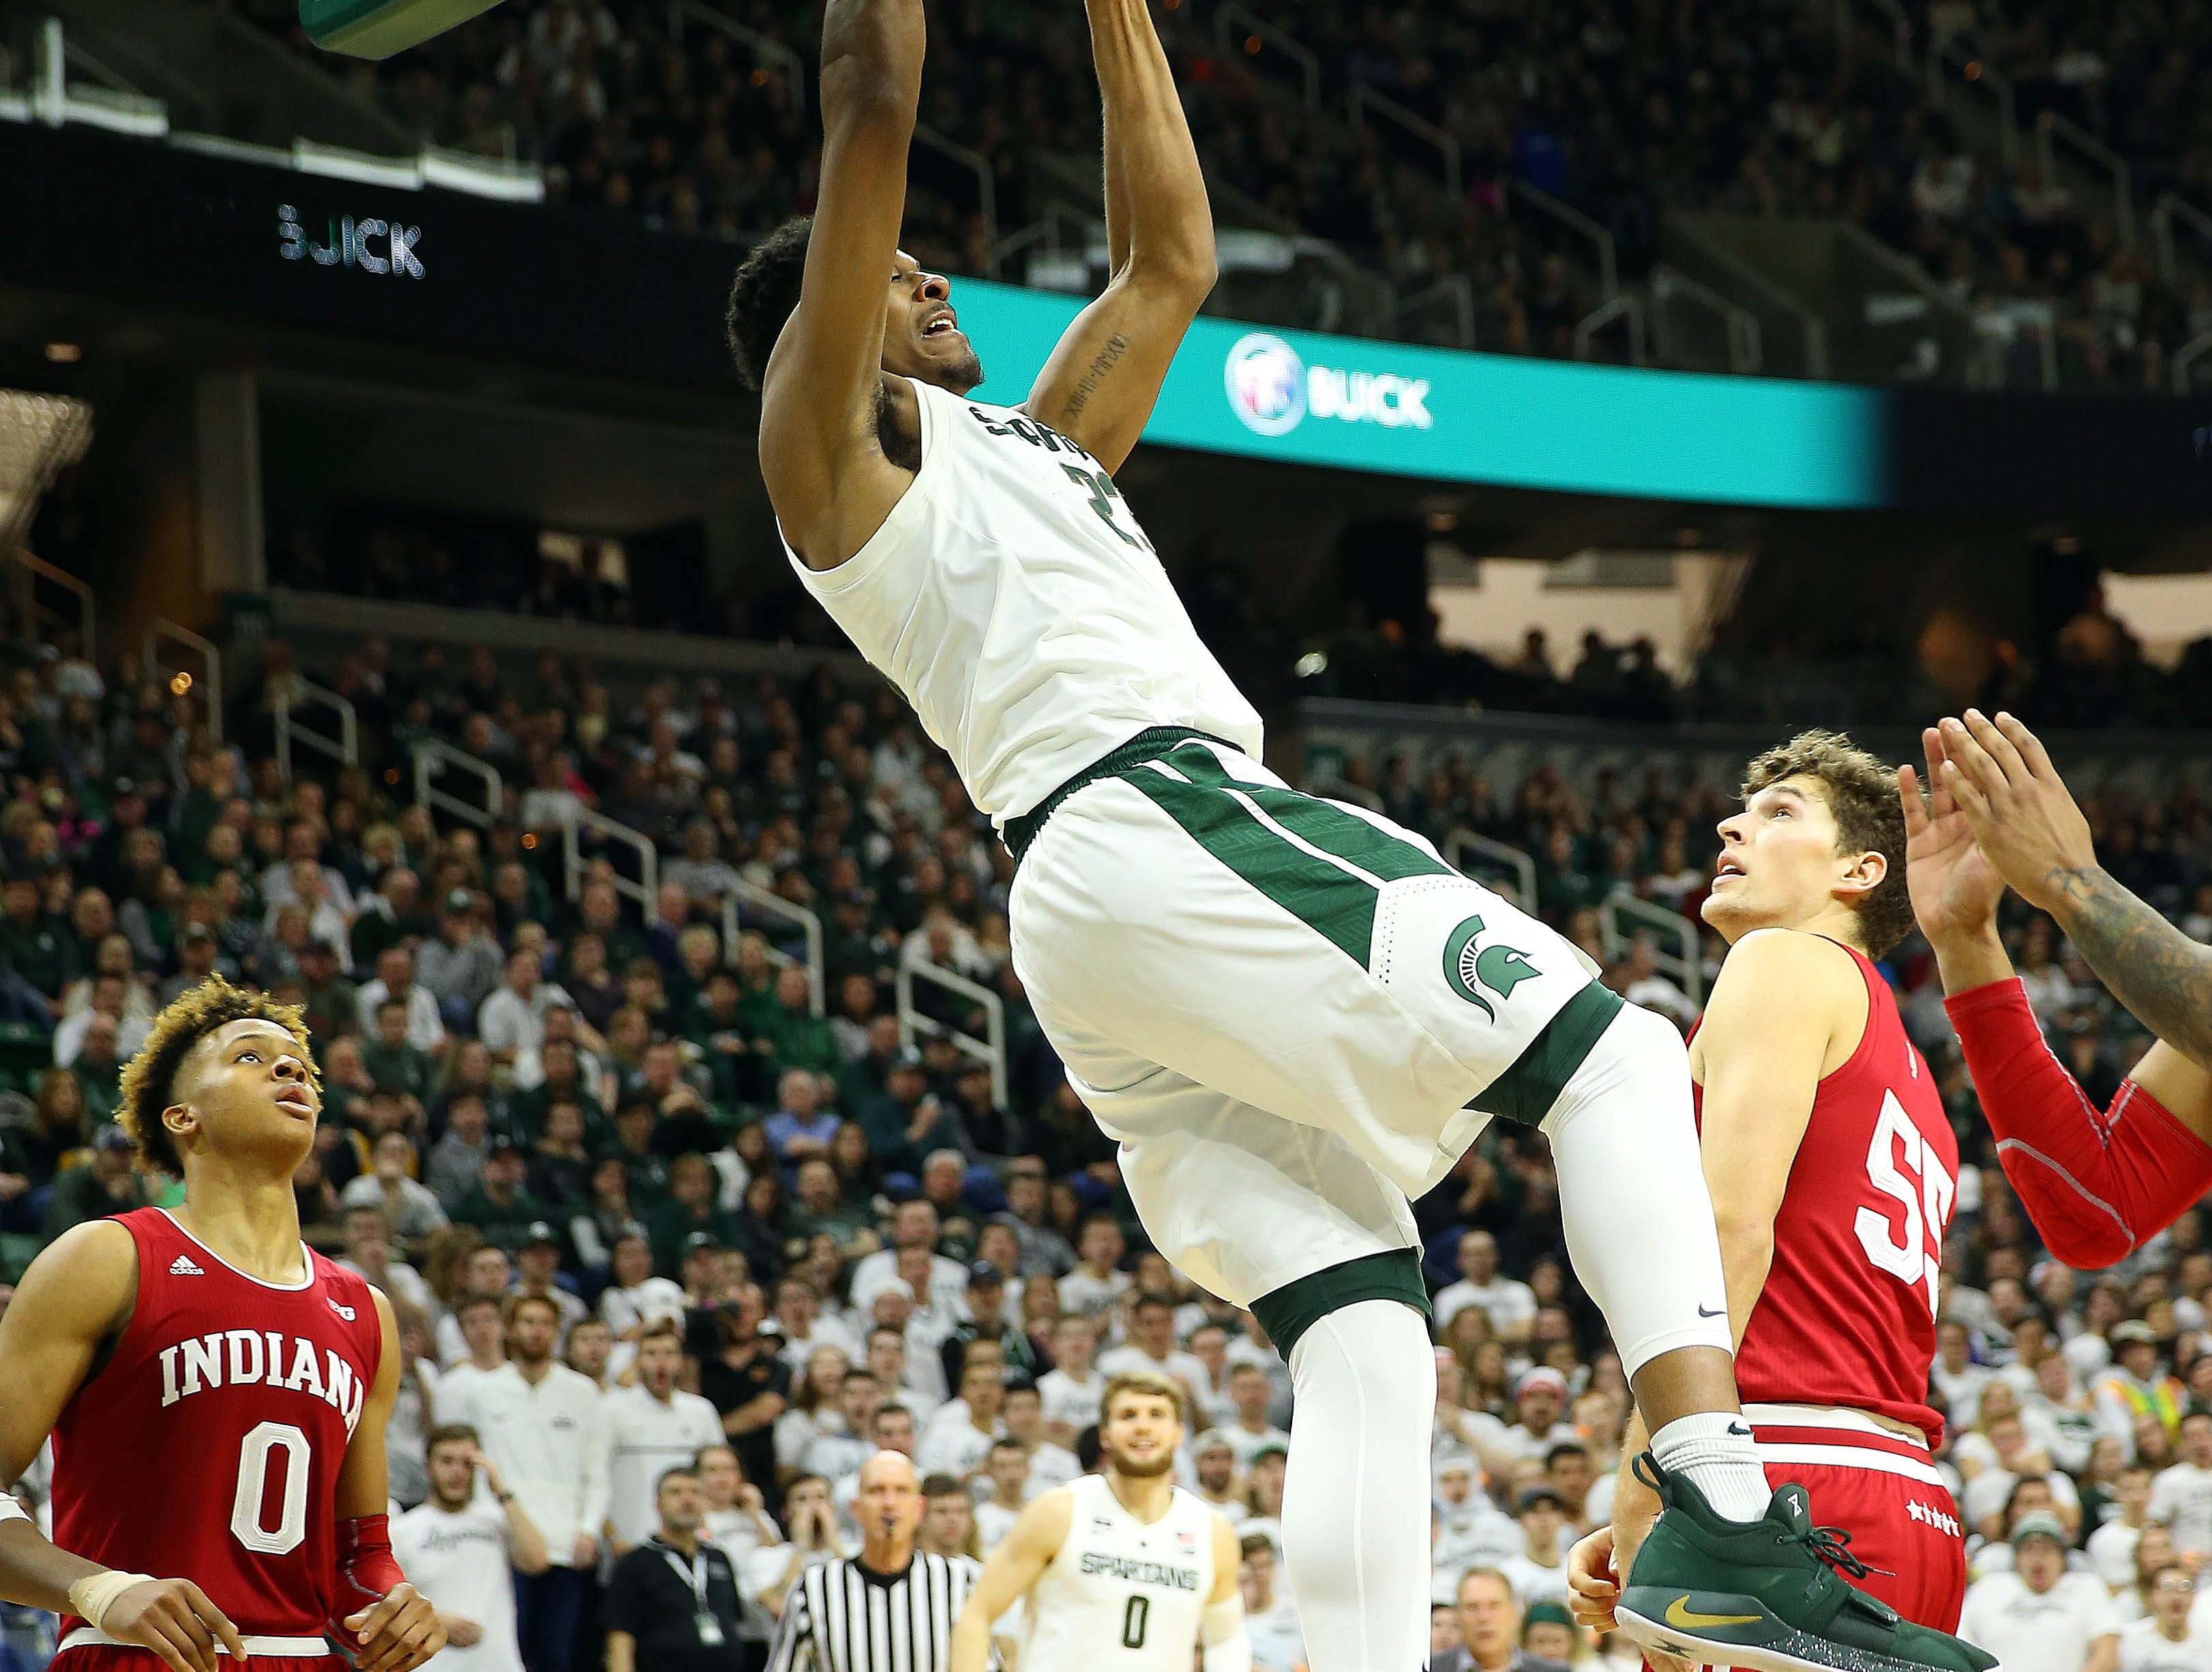 Feb 2, 2019; East Lansing, MI, USA; Michigan State Spartans forward Xavier Tillman (23) dunks the ball during the second half of a game against the Indiana Hoosiers at the Breslin Center. Mandatory Credit: Mike Carter-USA TODAY Sports